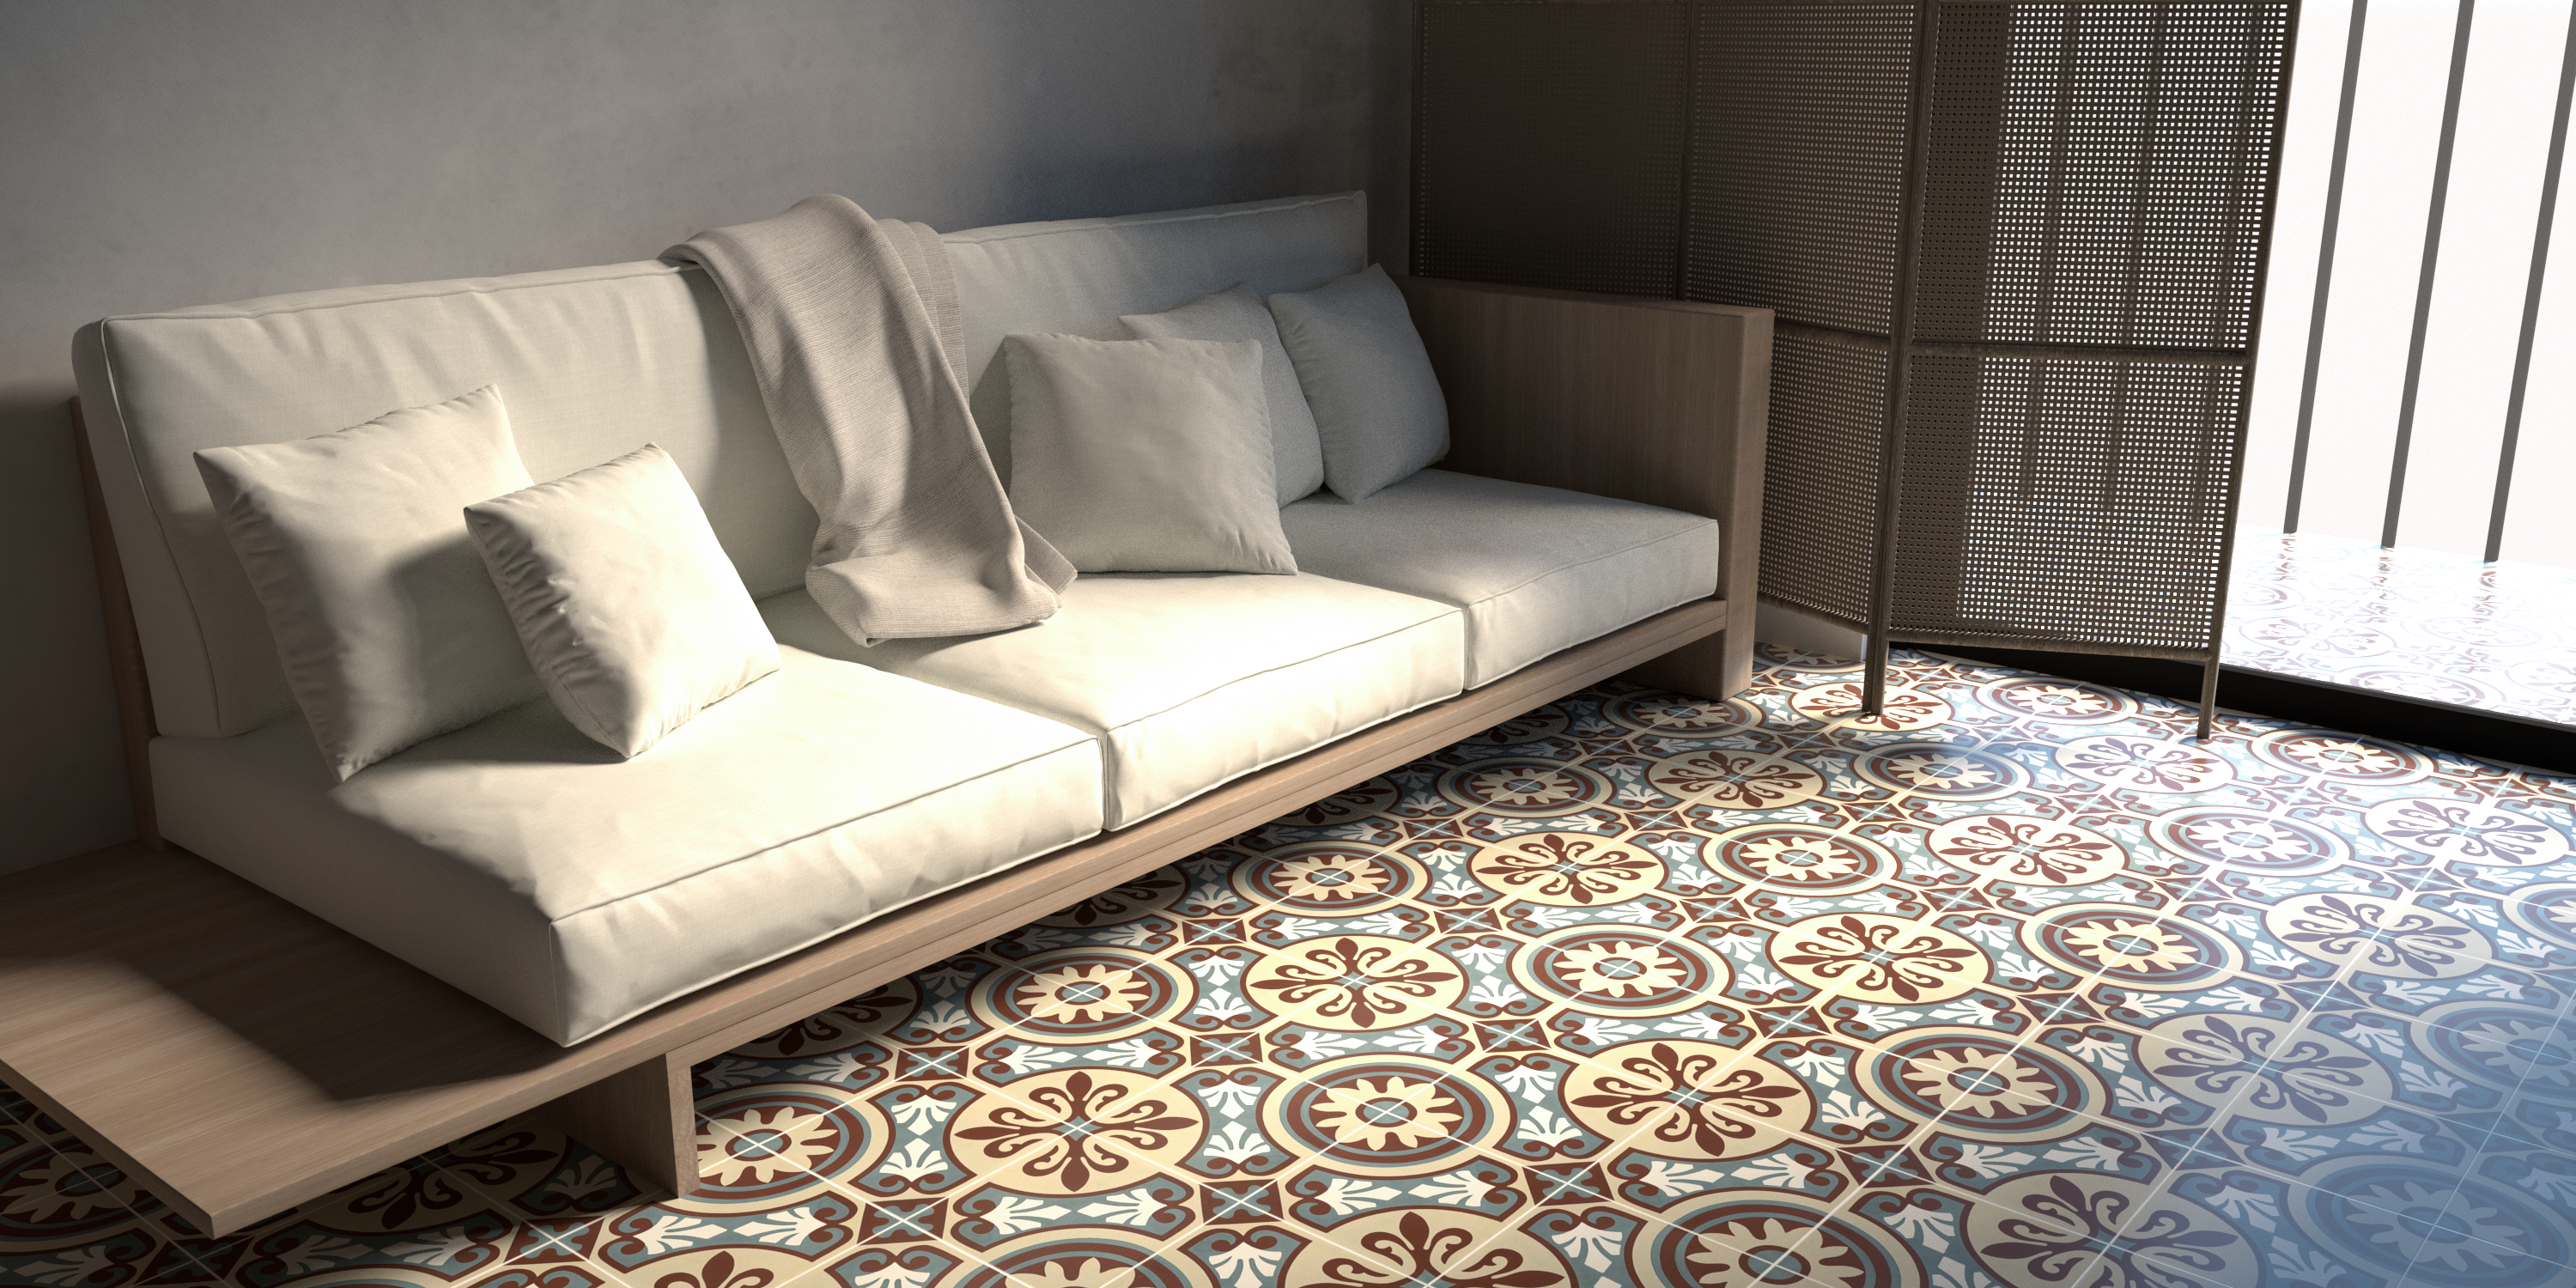 Special interior accents with decorative encaustic cement tiles